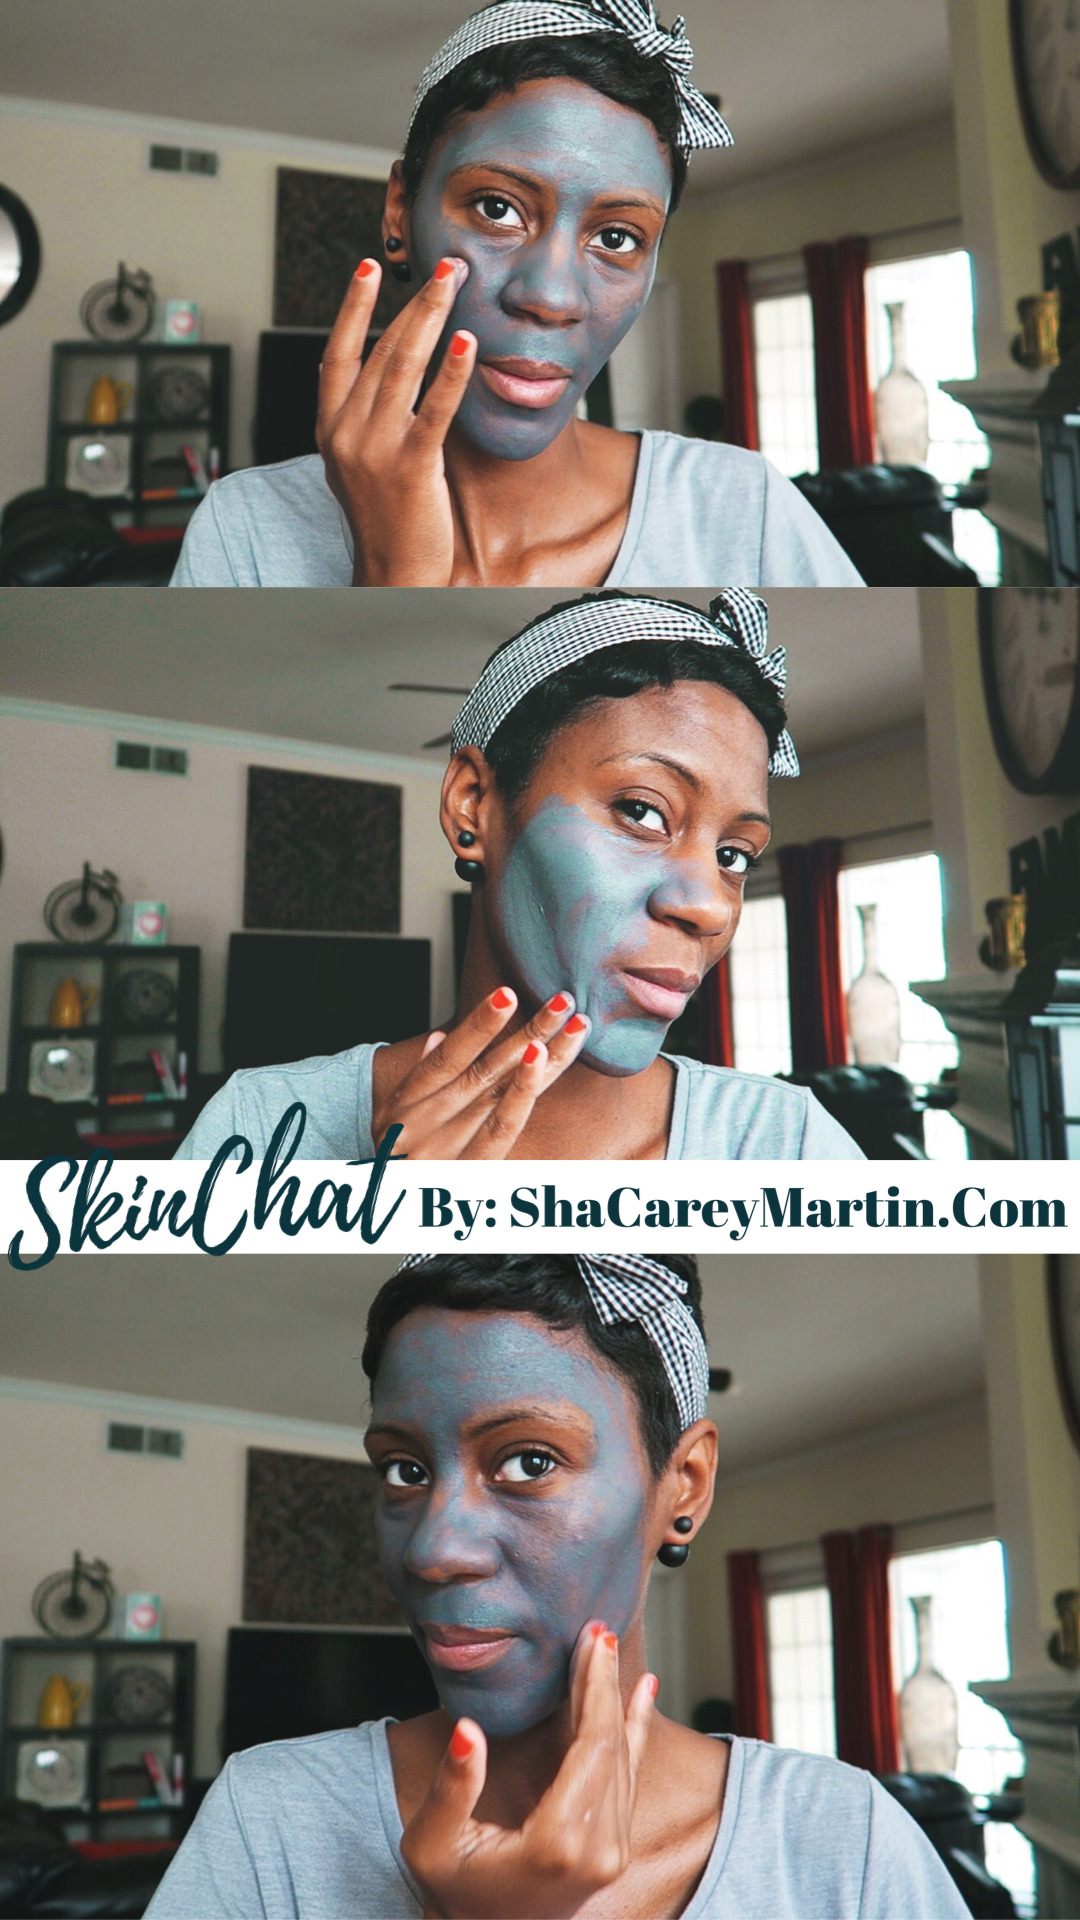 An Honest SKin Update: The Blemishes, Masking and More!